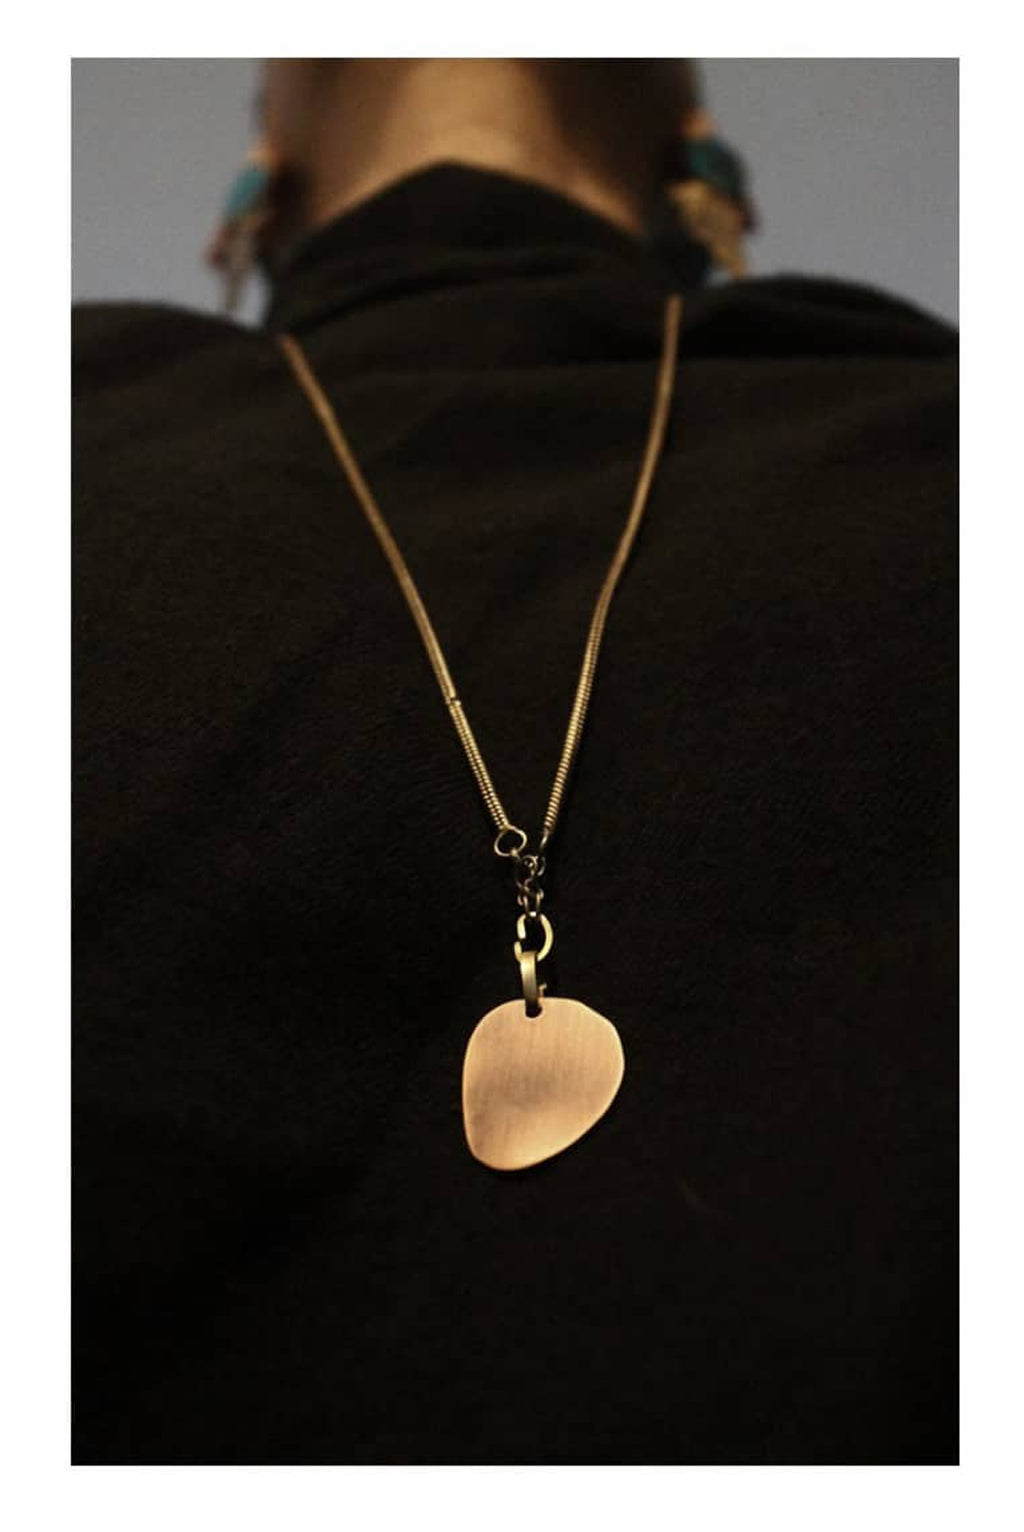 copper-blot pendant-chain